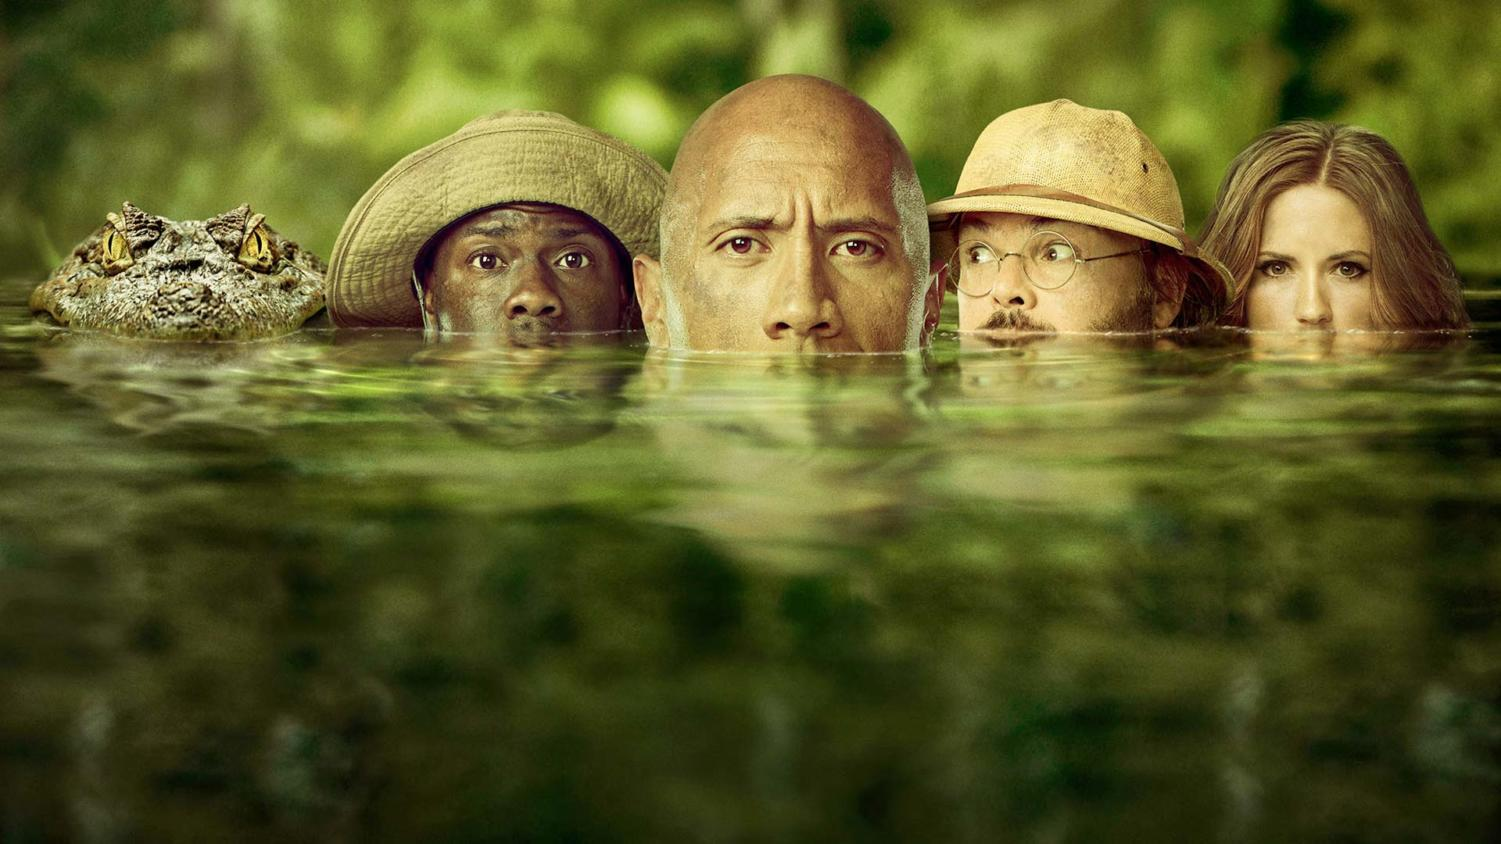 'Jumanji: Welcome to the Jungle' stars Dwayne Johnson, Kevin Hart, Jack Black, and Karen Gillan.